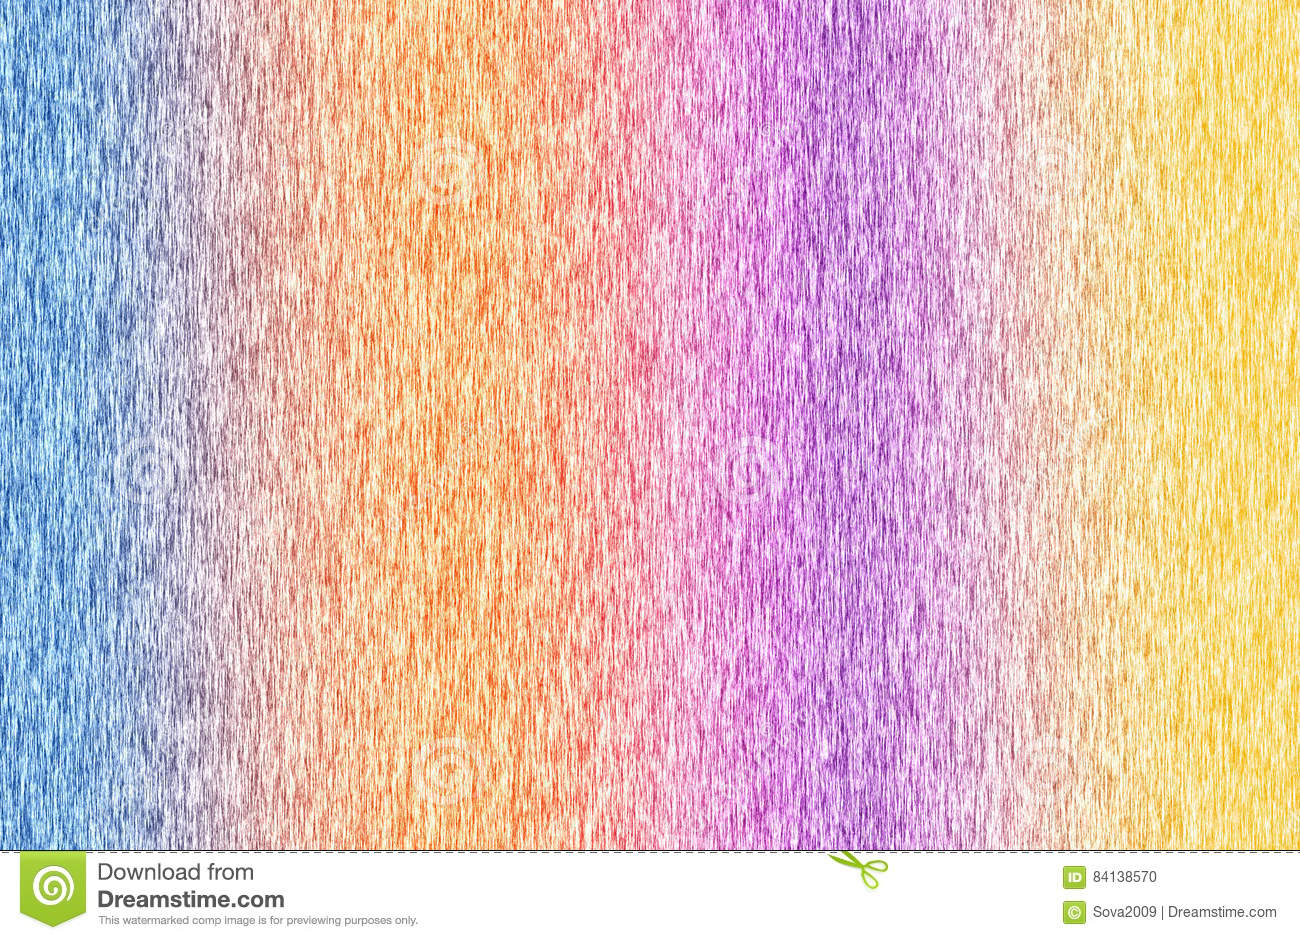 Colored Pencil Shading Photos Free Royalty Free Stock Photos From Dreamstime